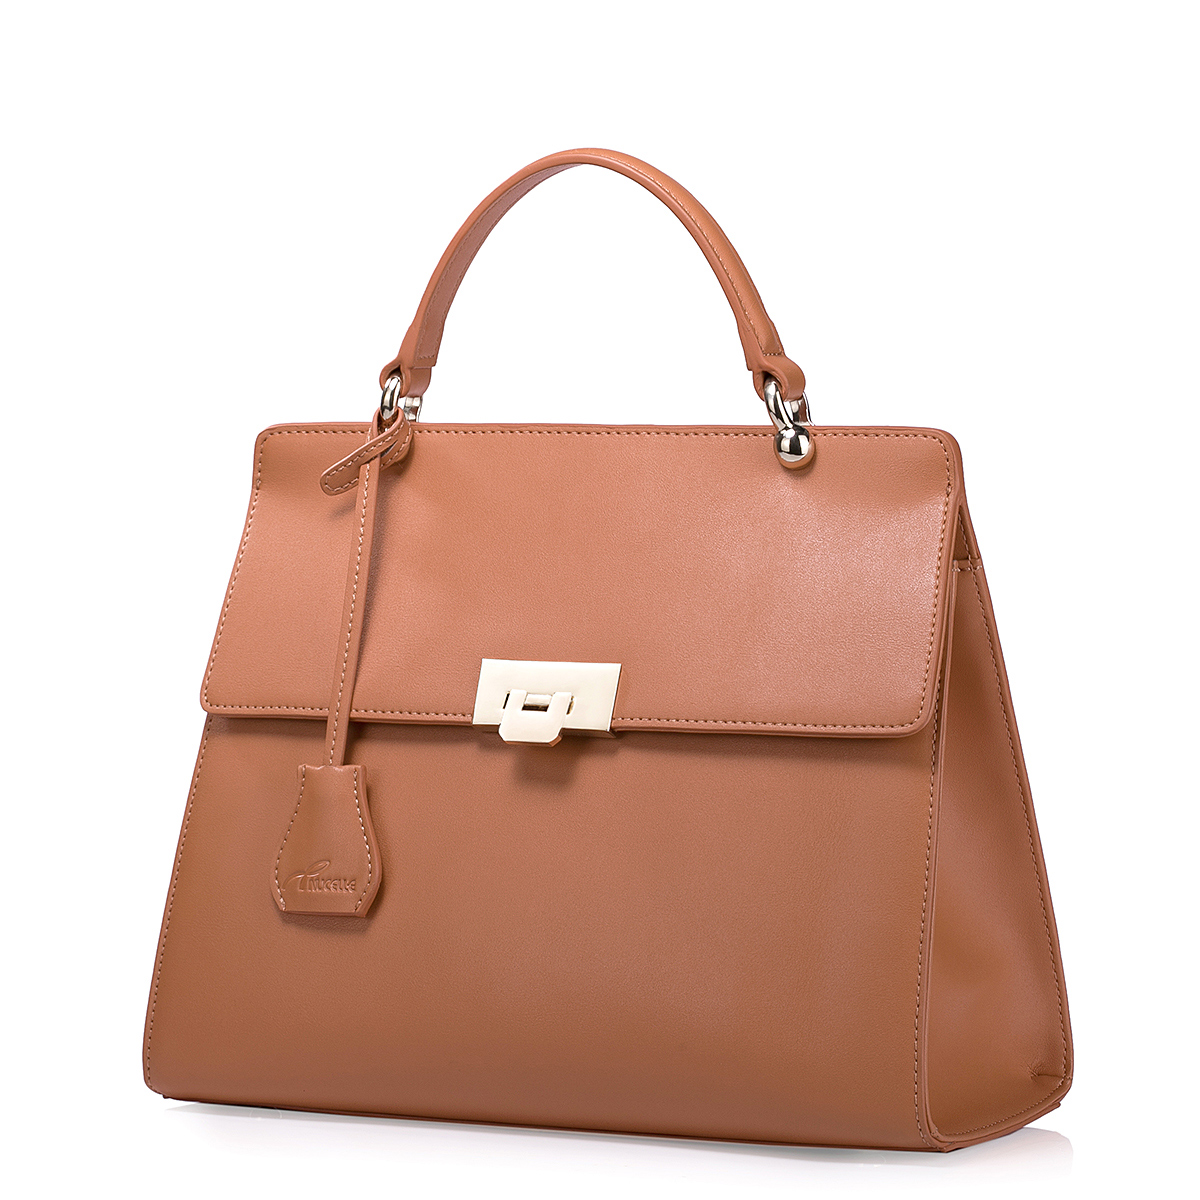 handbags supplier